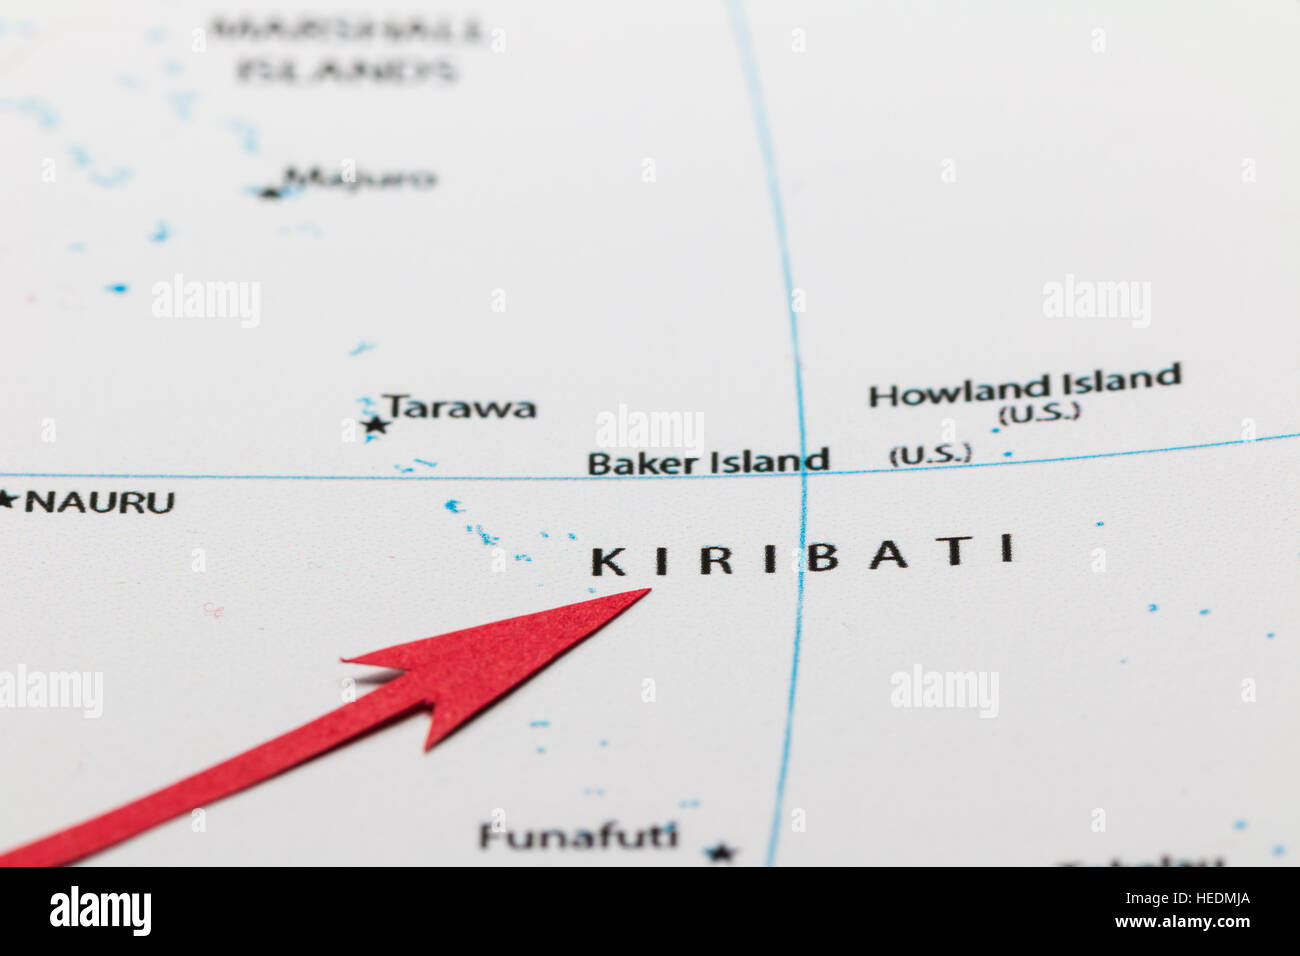 Red arrow pointing Kiribati islands on the map of Pacific ocean - Stock Image